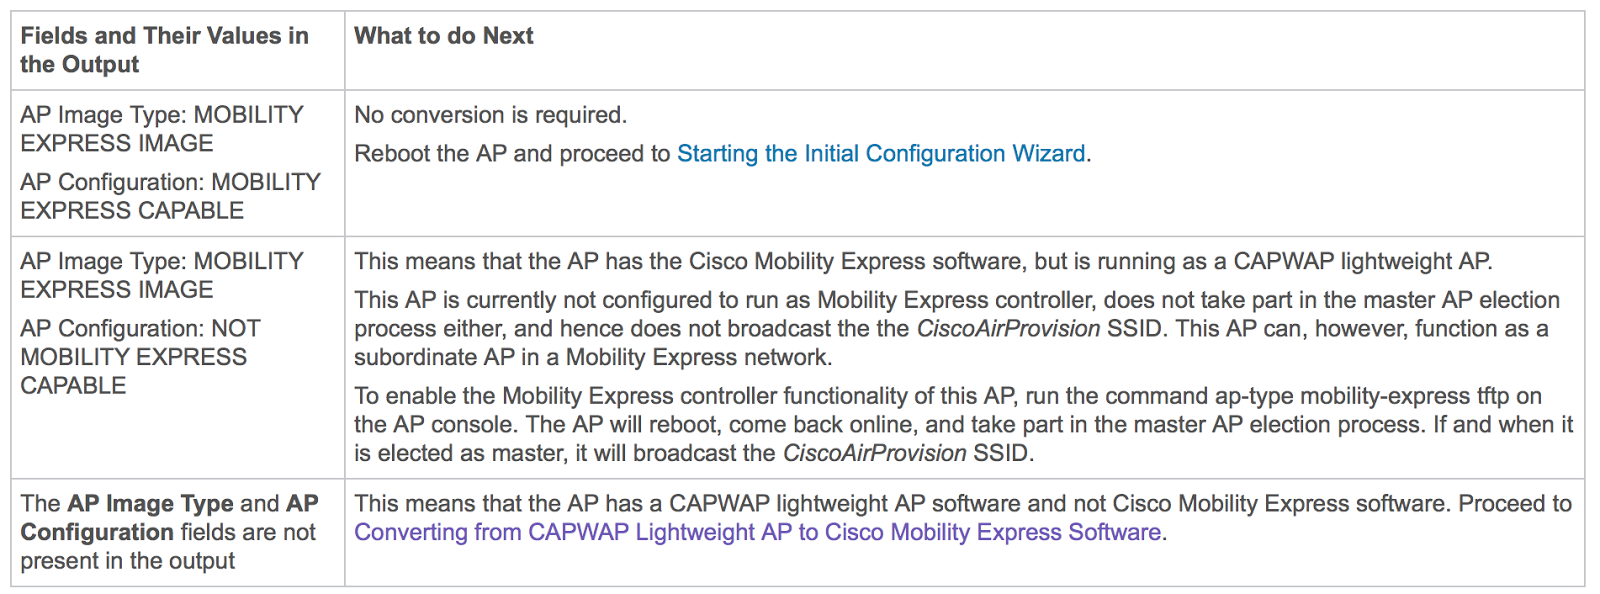 post-ccie life : Mobility Express on 3802i